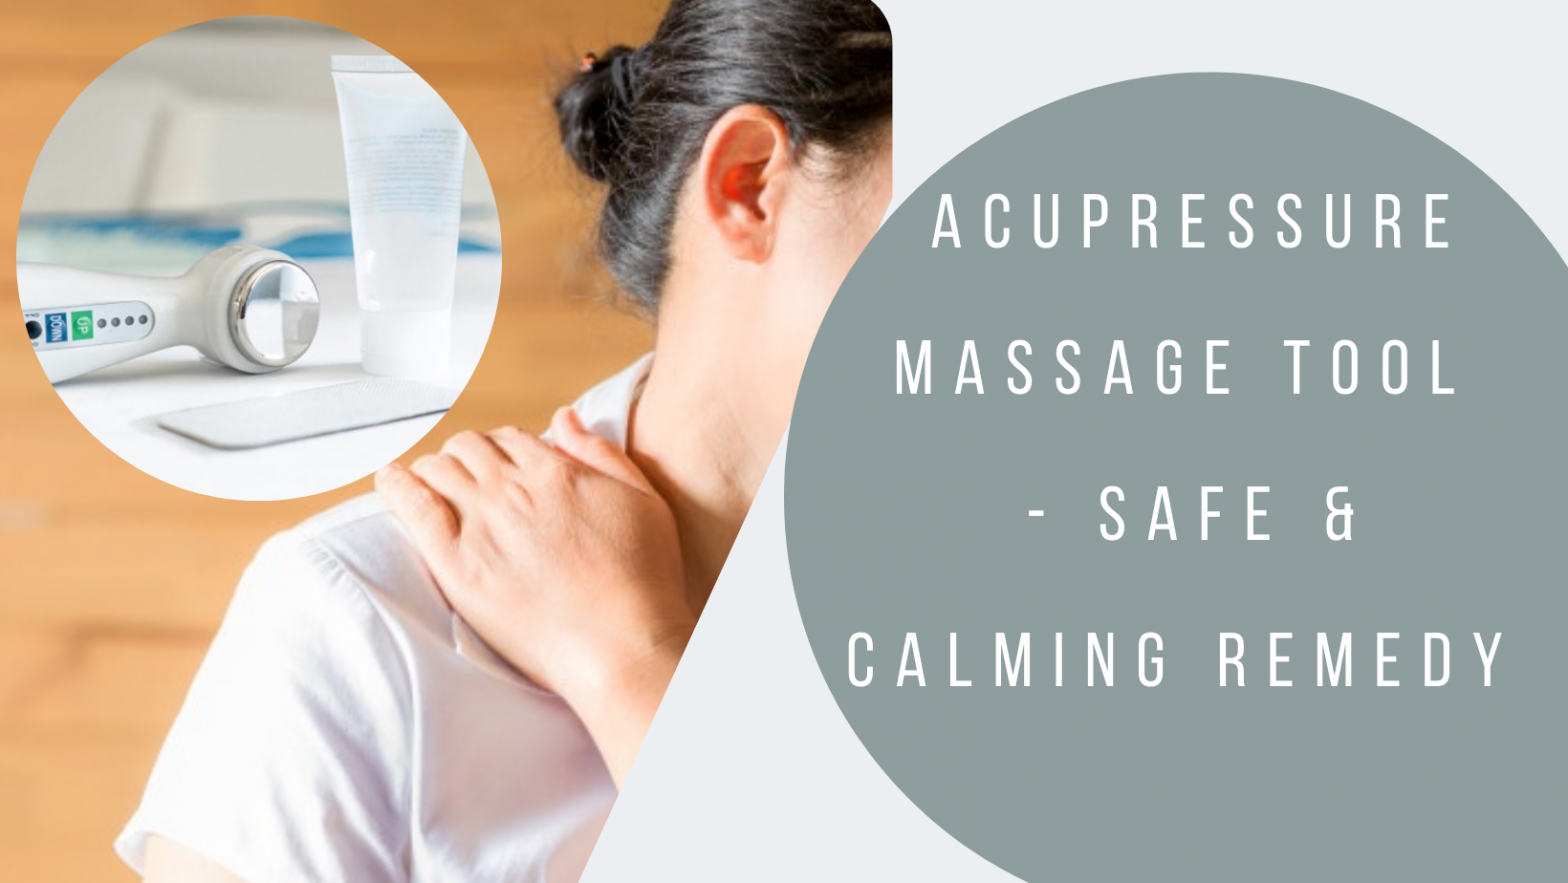 Acupressure Massage Tool - Safe and Calming Remedy